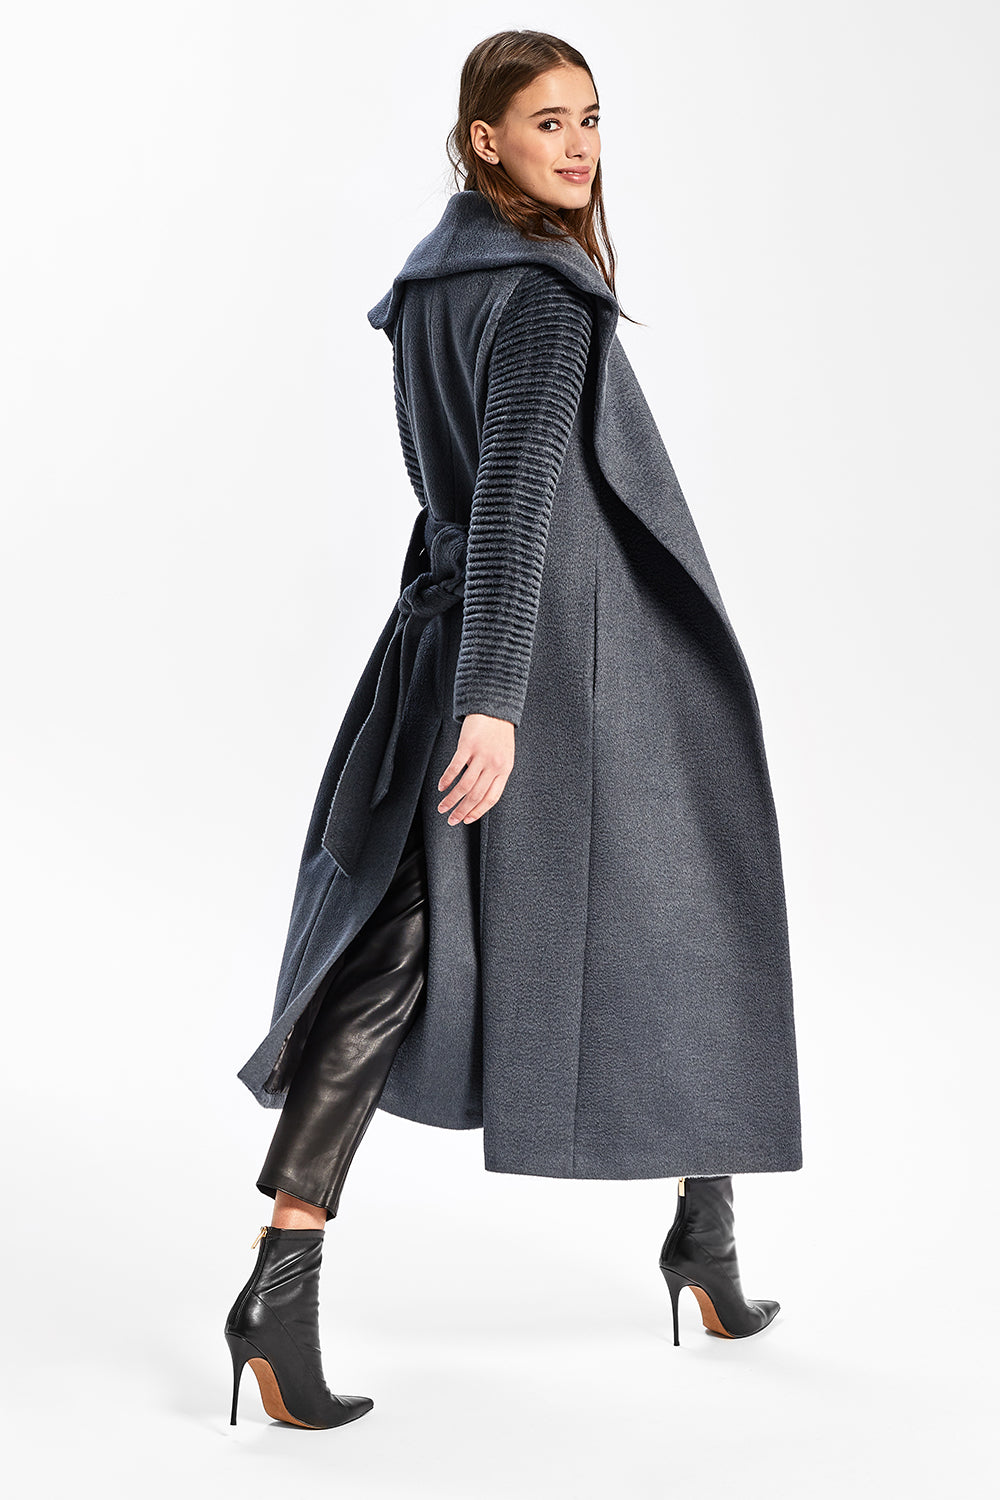 Sentaler Suri Alpaca Long Shawl Collar Wrap Coat with Ribbed Sleeves featured in Suri Alpaca and available in Charcoal. Seen from side.